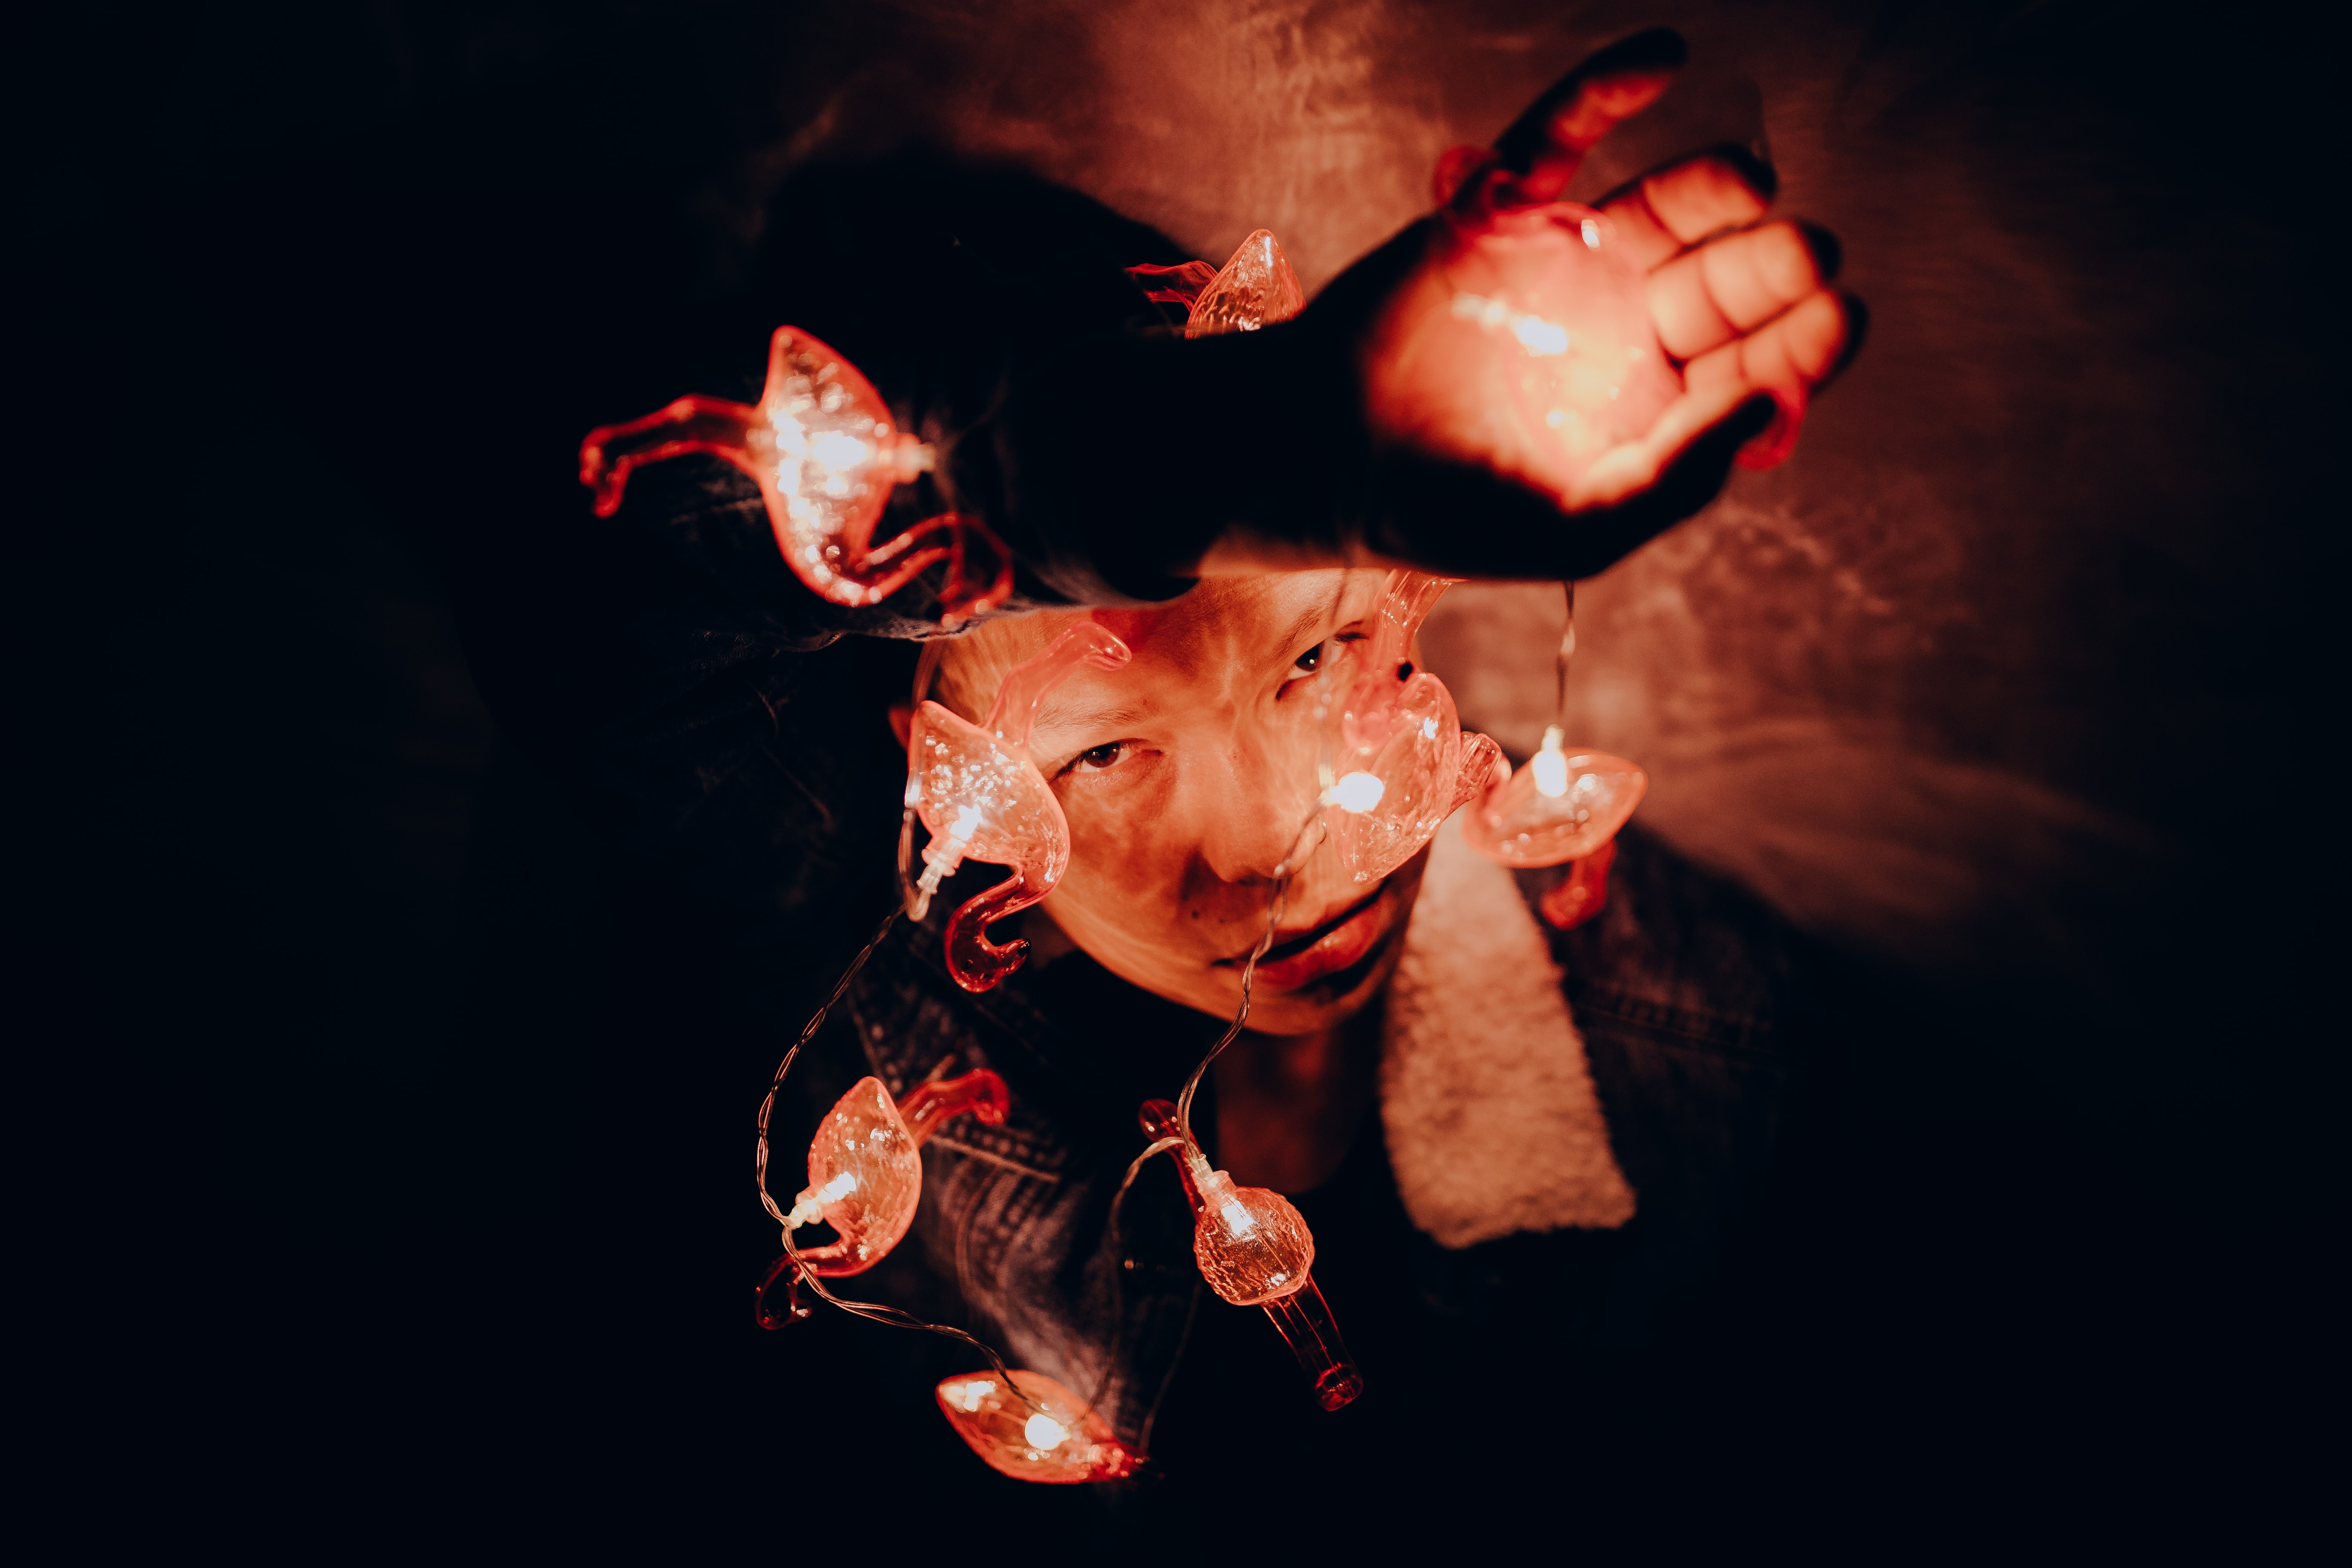 person playing with fire in a dark room